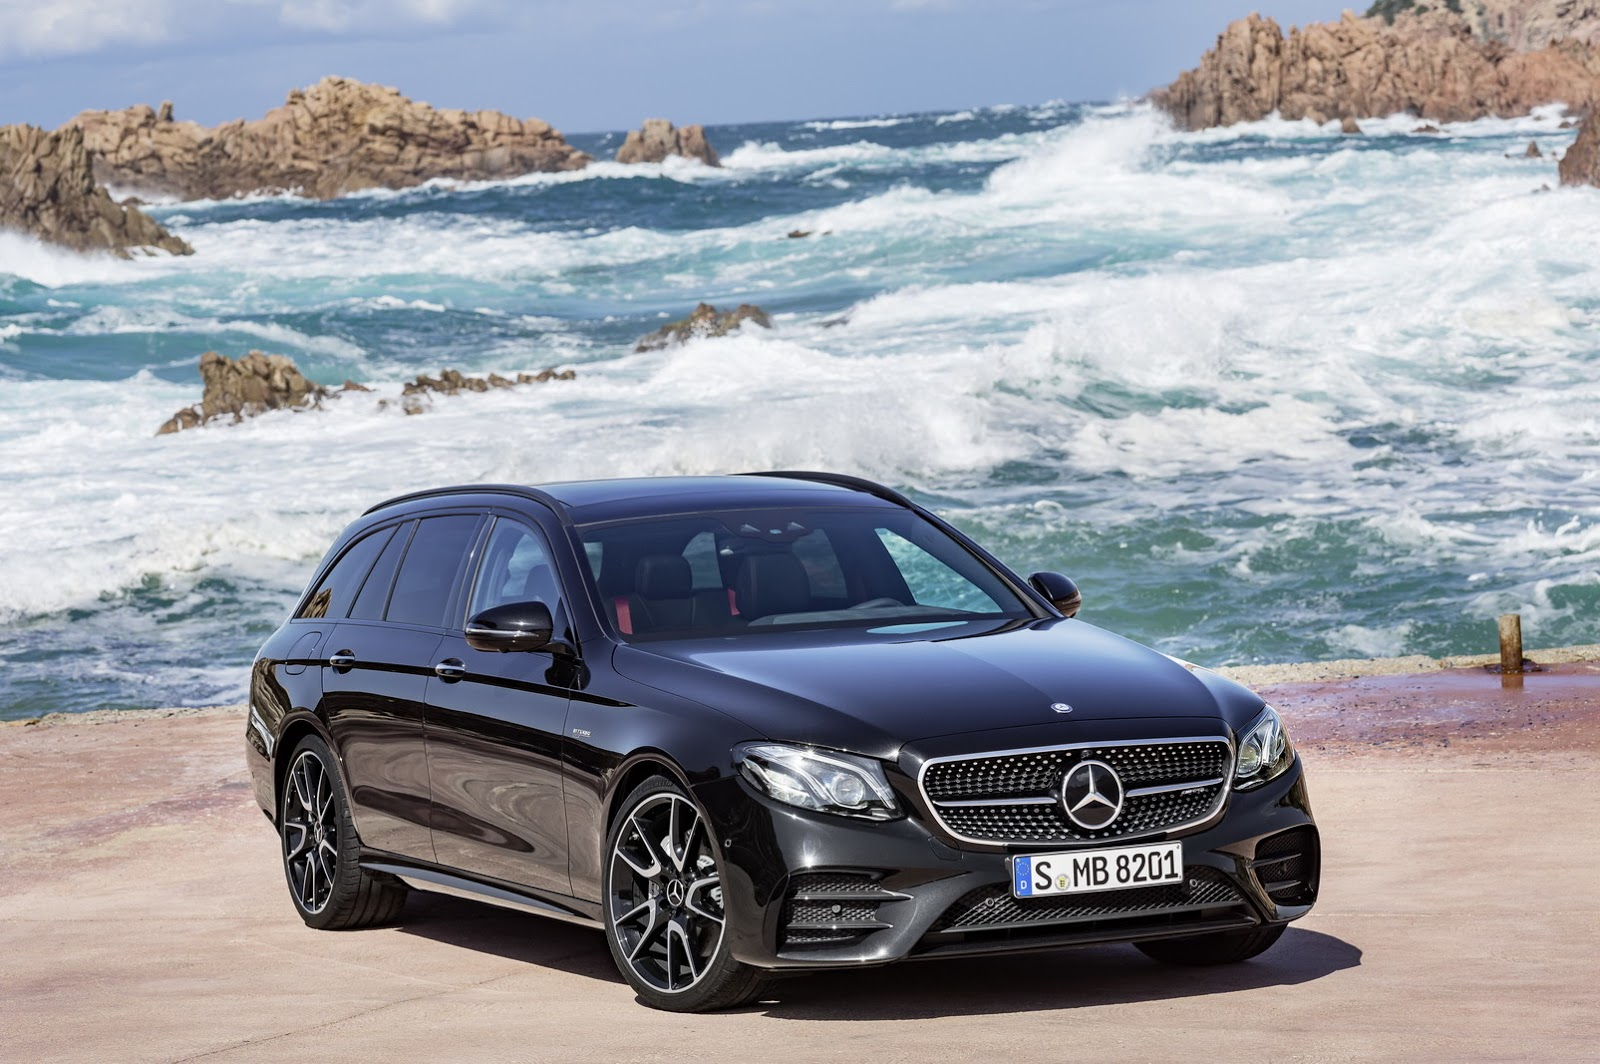 the new mercedes benz e class estate revealed warm amg e 43 variant gets our vote motoroids. Black Bedroom Furniture Sets. Home Design Ideas